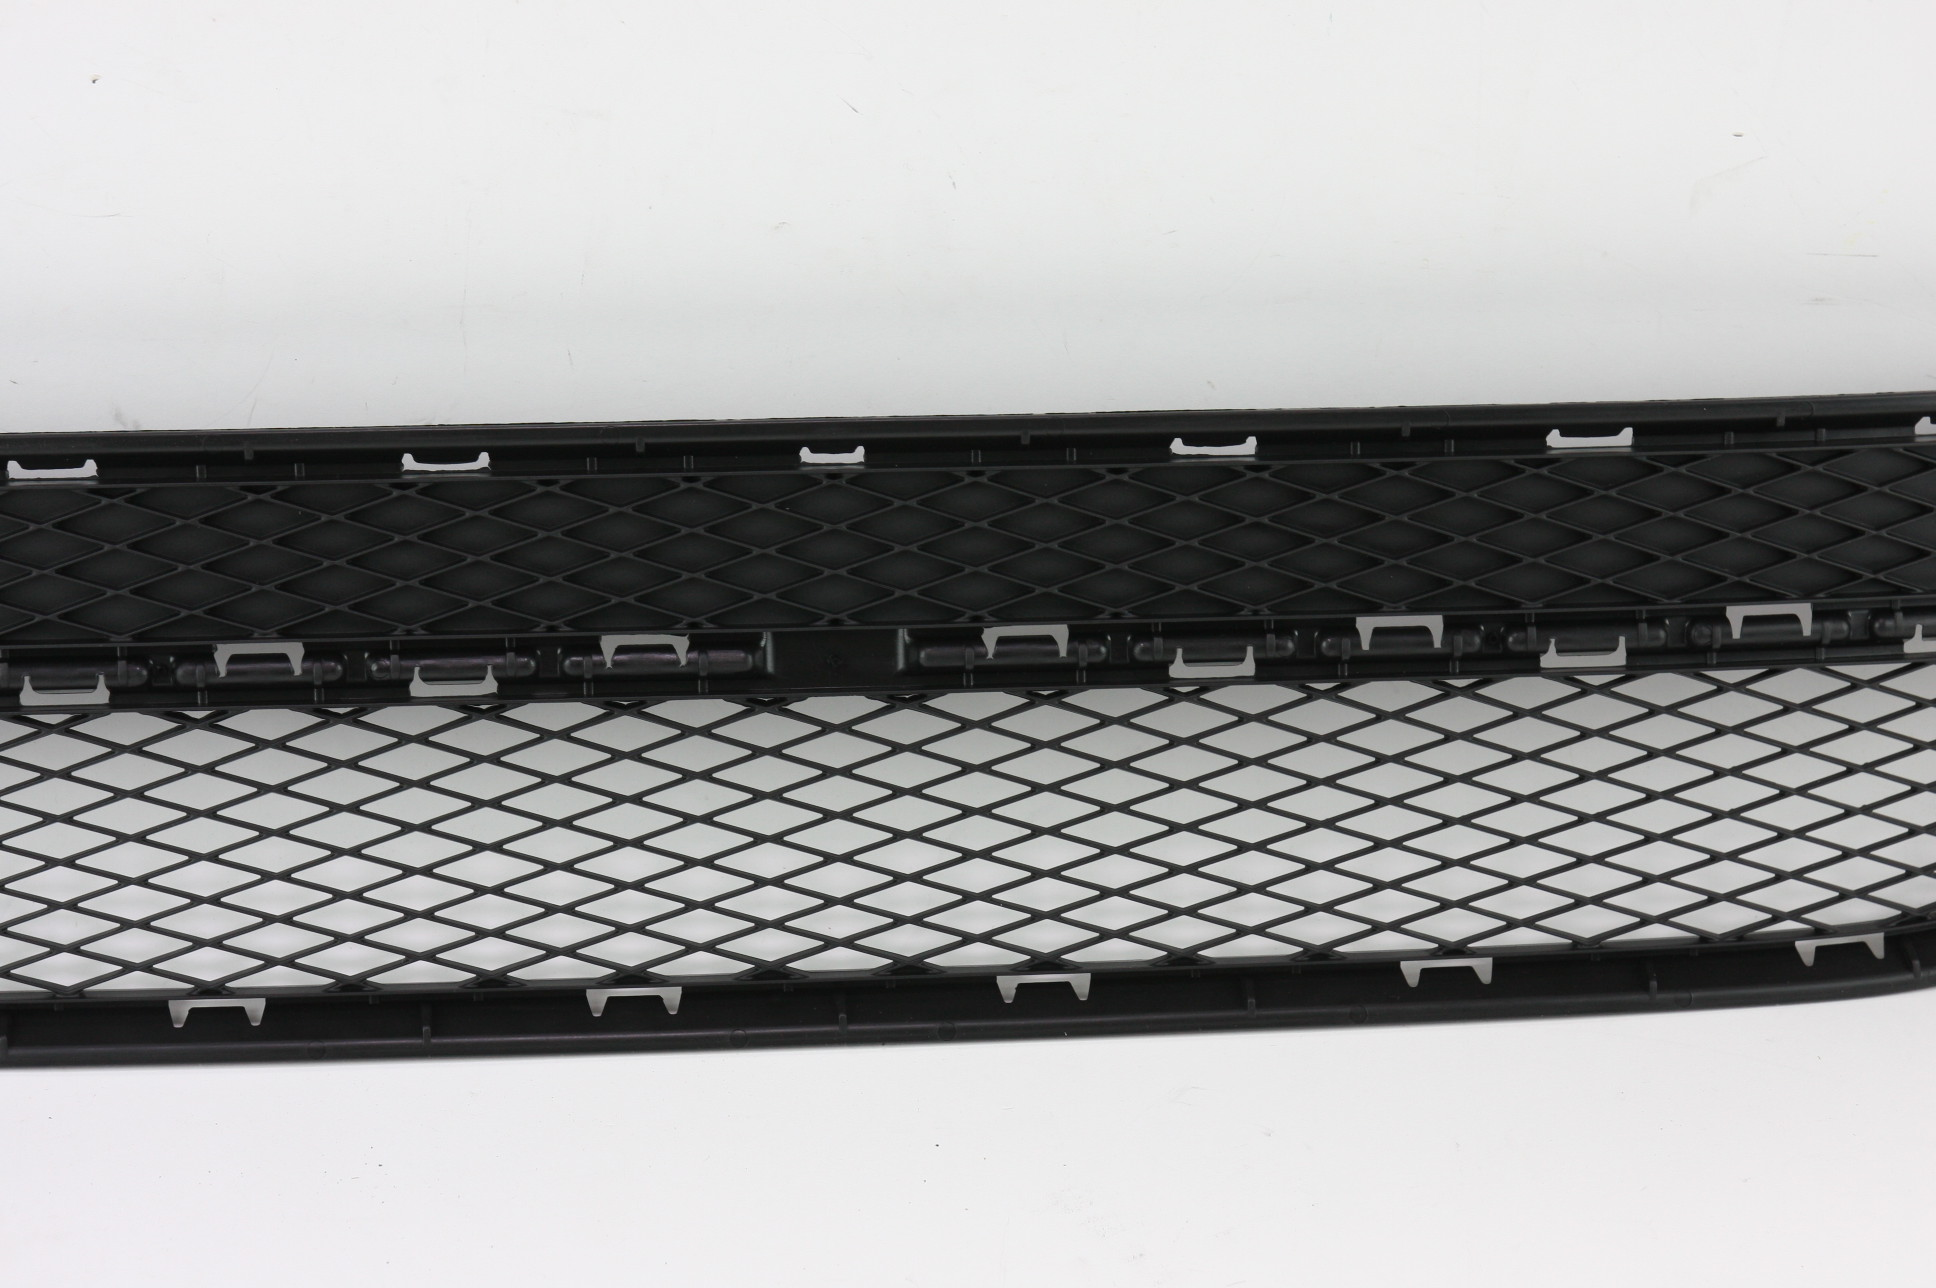 New OEM 5N08536779B9 Volkswagen VW Tiguan Front Bumper Lower Bottom Grille Grill - image 4